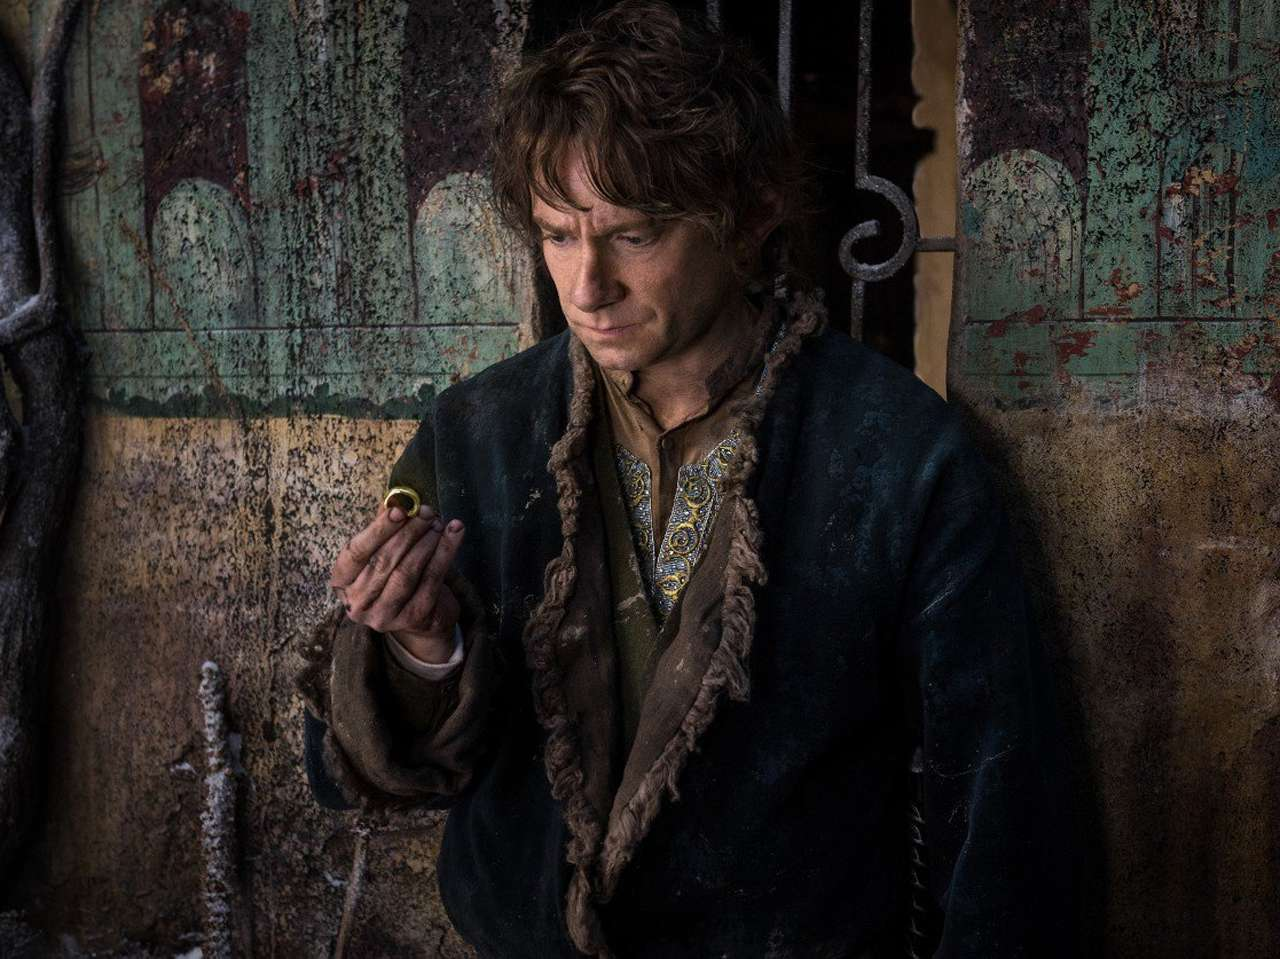 'The Hobbit: The Battle of the Five Armies', Foto: © 2014 Warner Bros. Ent. All Rights Reserved.